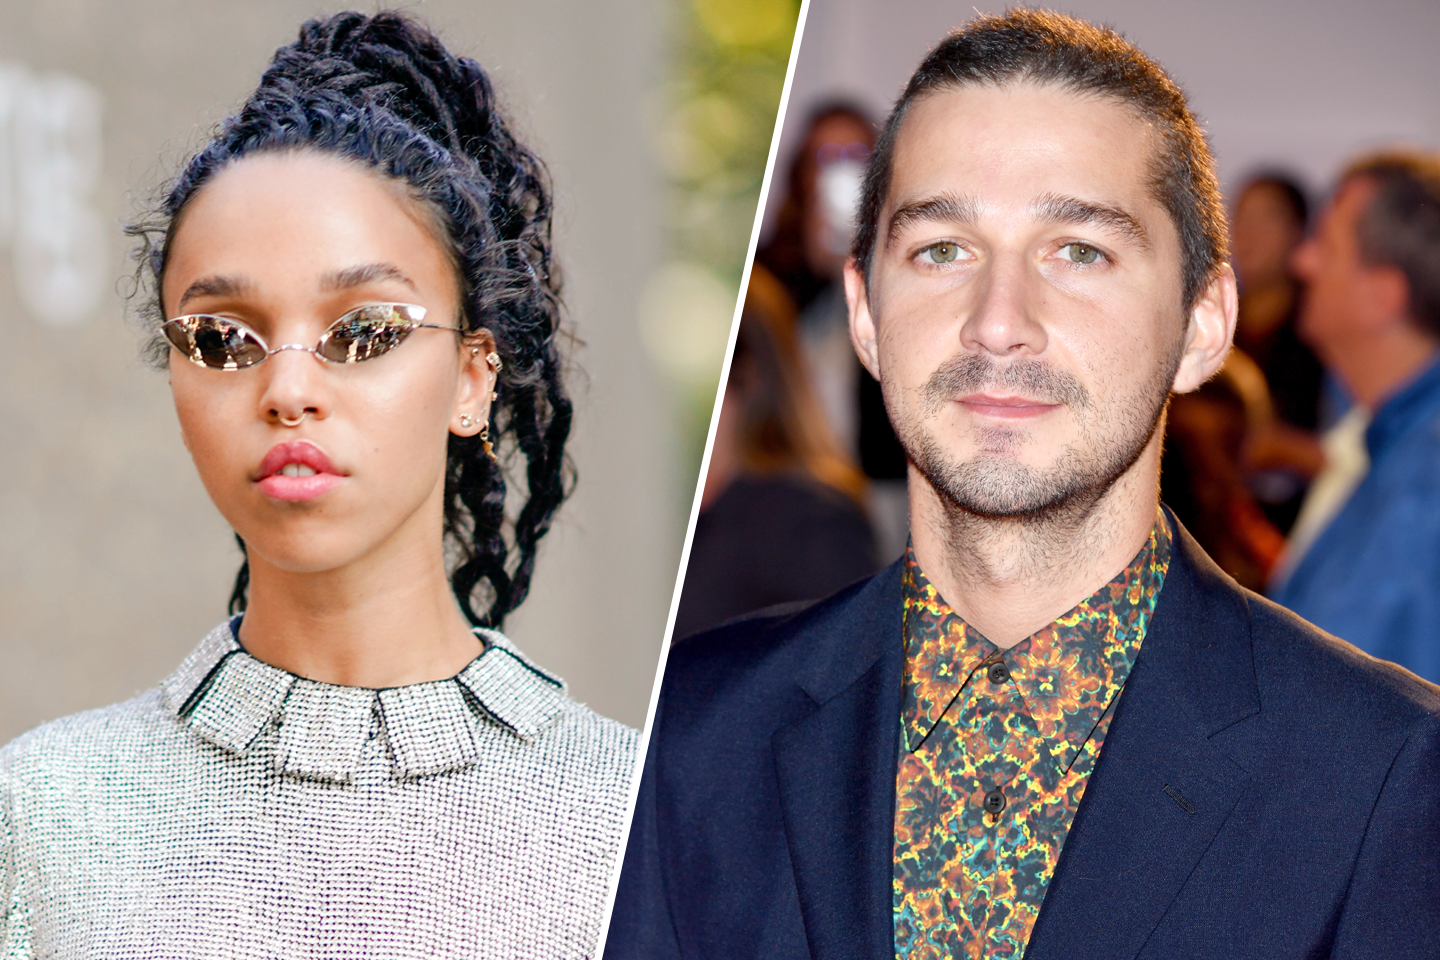 shia-labeouf-denies-fka-twigs-abuse-claims-in-new-countersuit